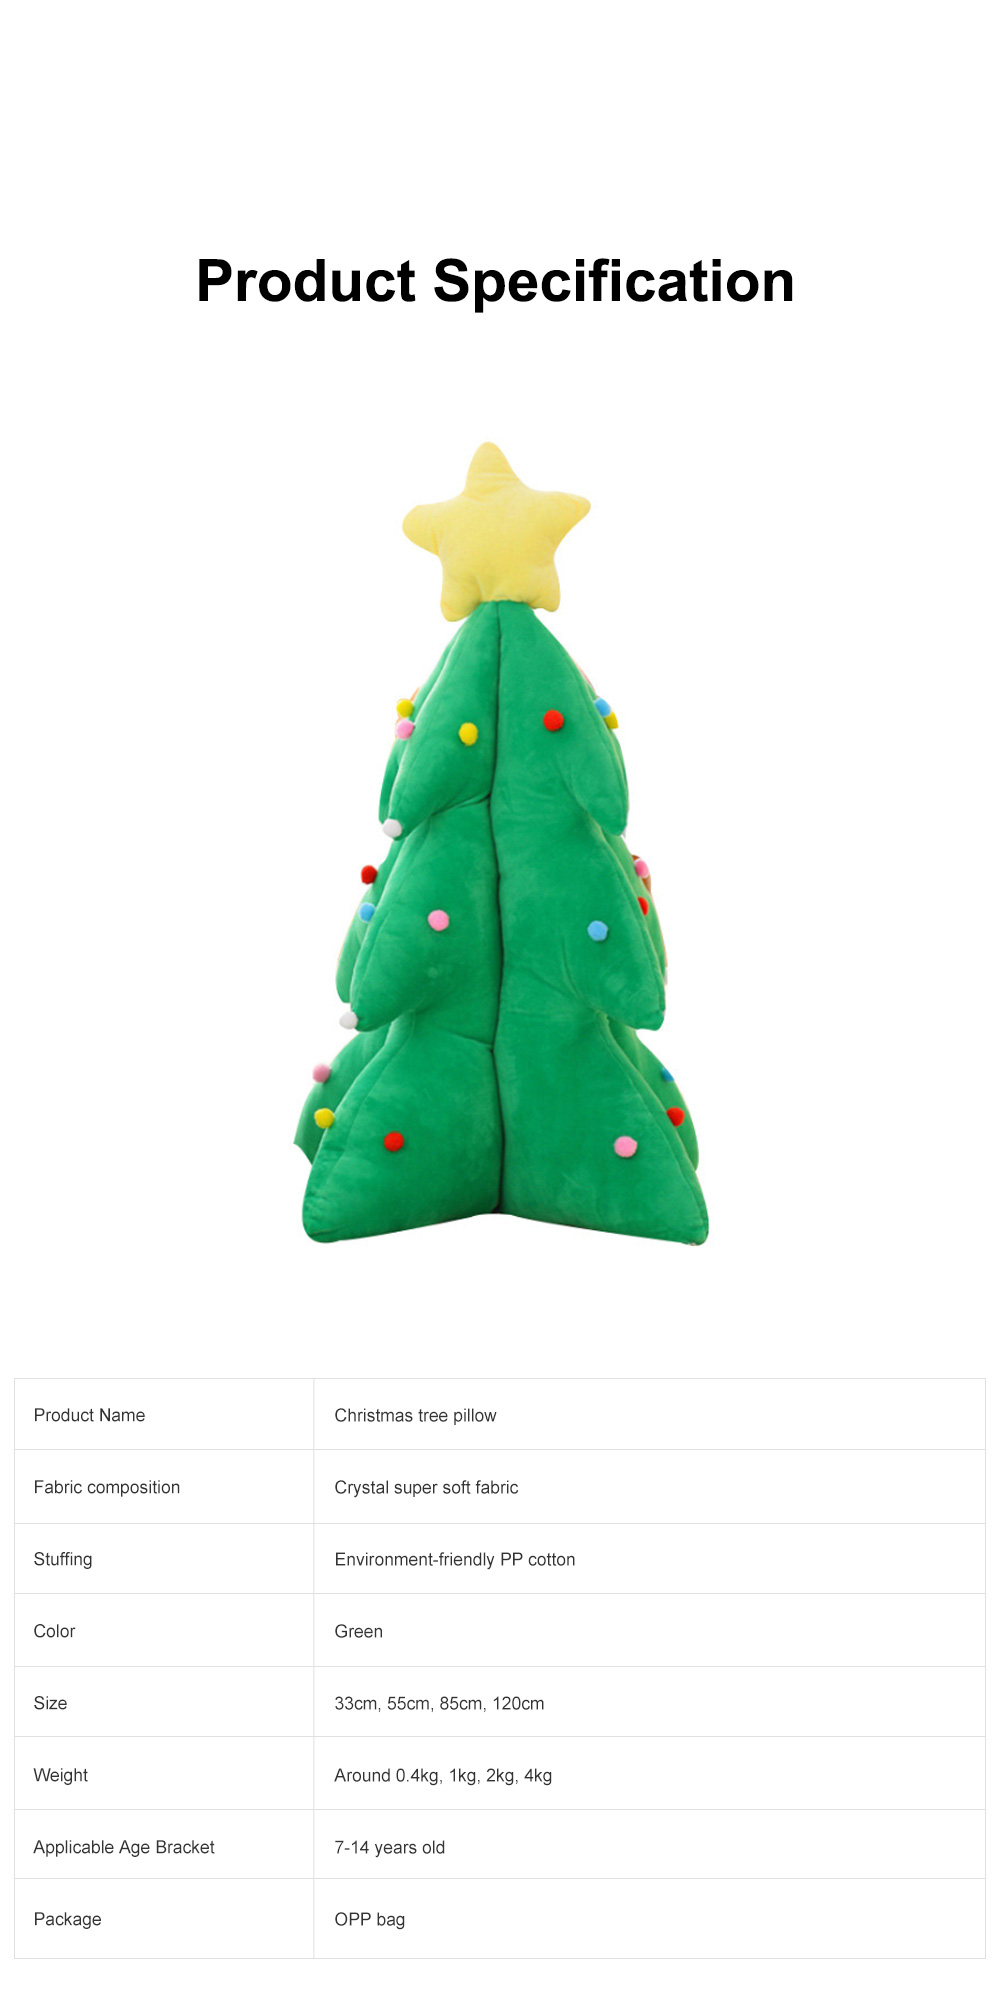 Music Christmas Tree Pillow for Gift Choice Luminous Musical Throw Pillow Stuffed Toy Environment-friendly PP Cotton Bolster 6